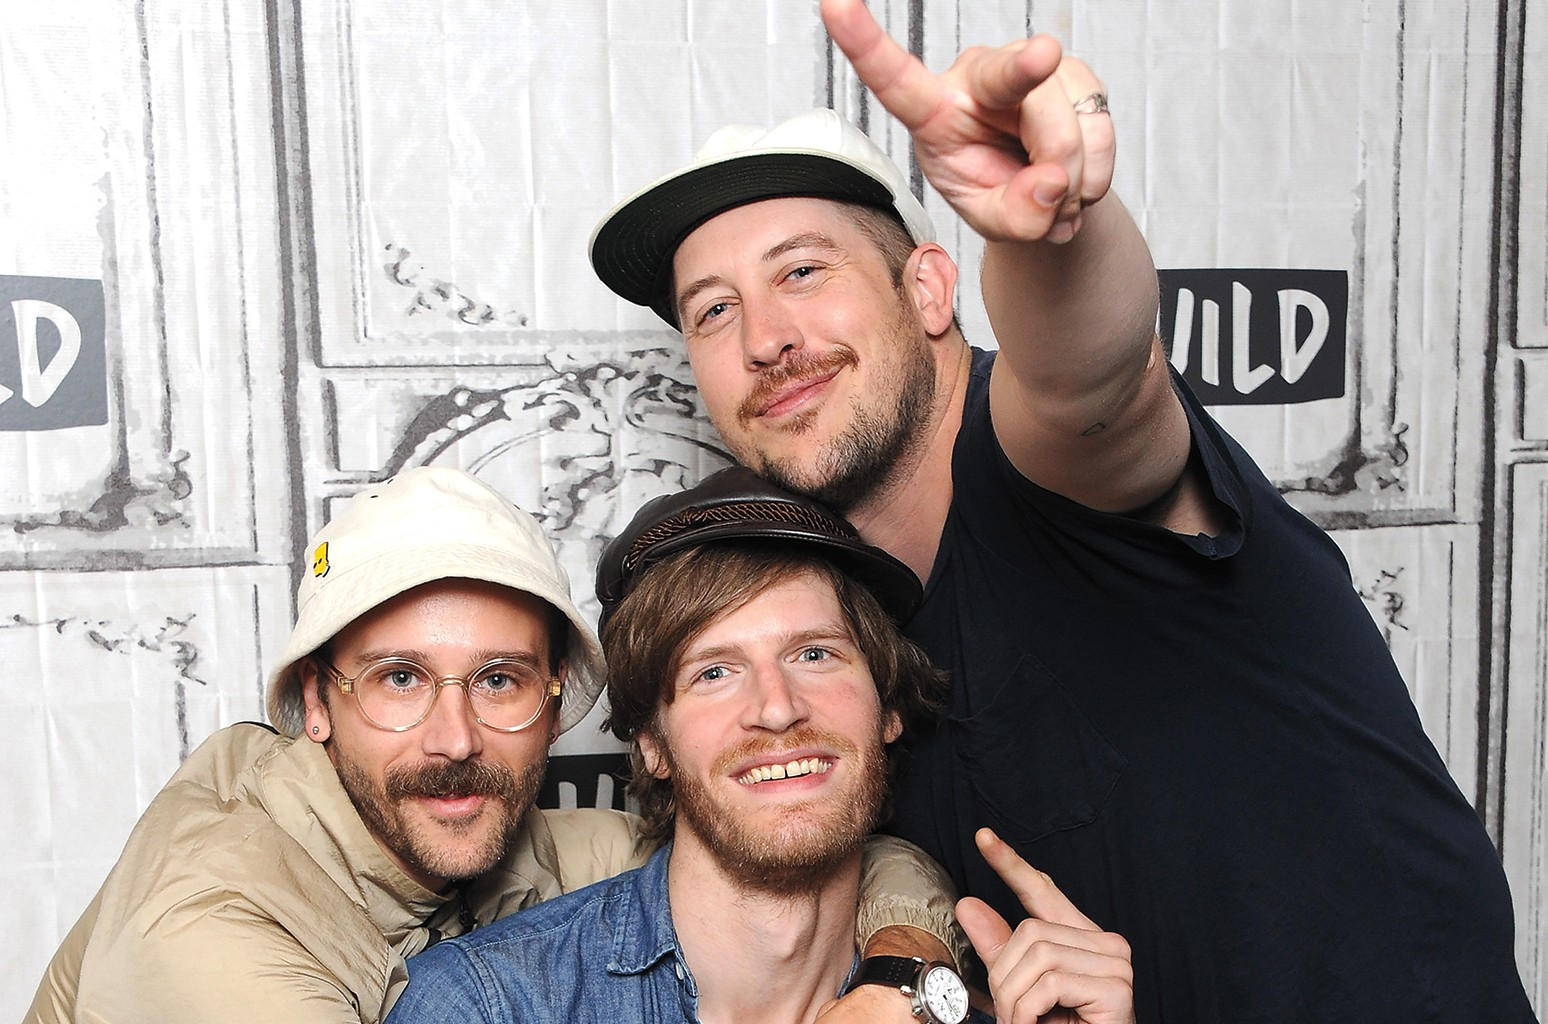 (L-R) John Gourley, Eric Howk and Zach Carothers of the band Portugal. The Man attend Build to discuss their eighth studio album 'Woodstock' at Build Studio on June 20, 2017 in New York City.